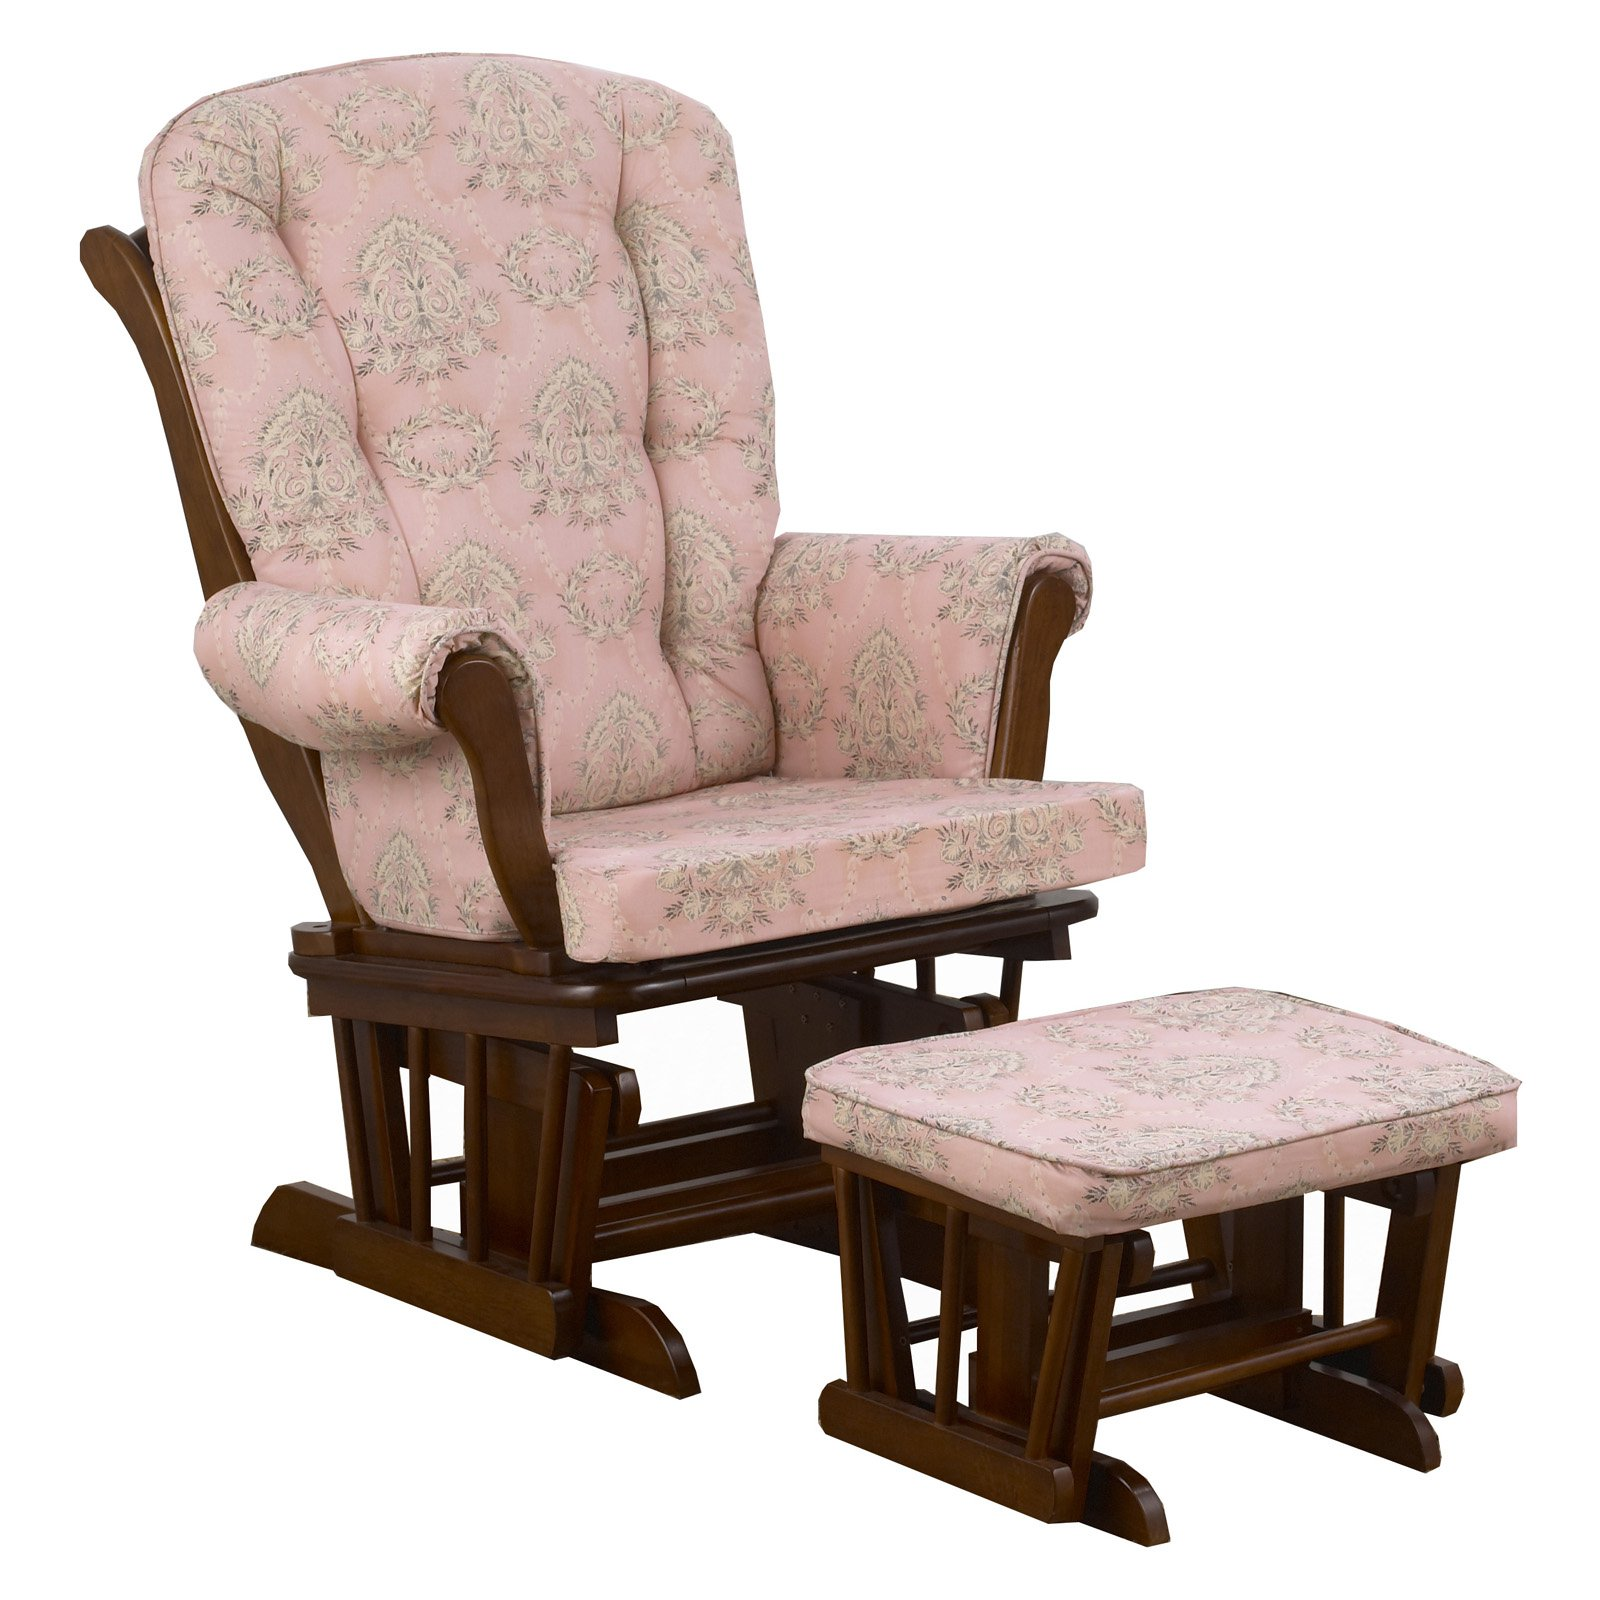 Cotton Tale Nightingale Floral Glider with Ottoman